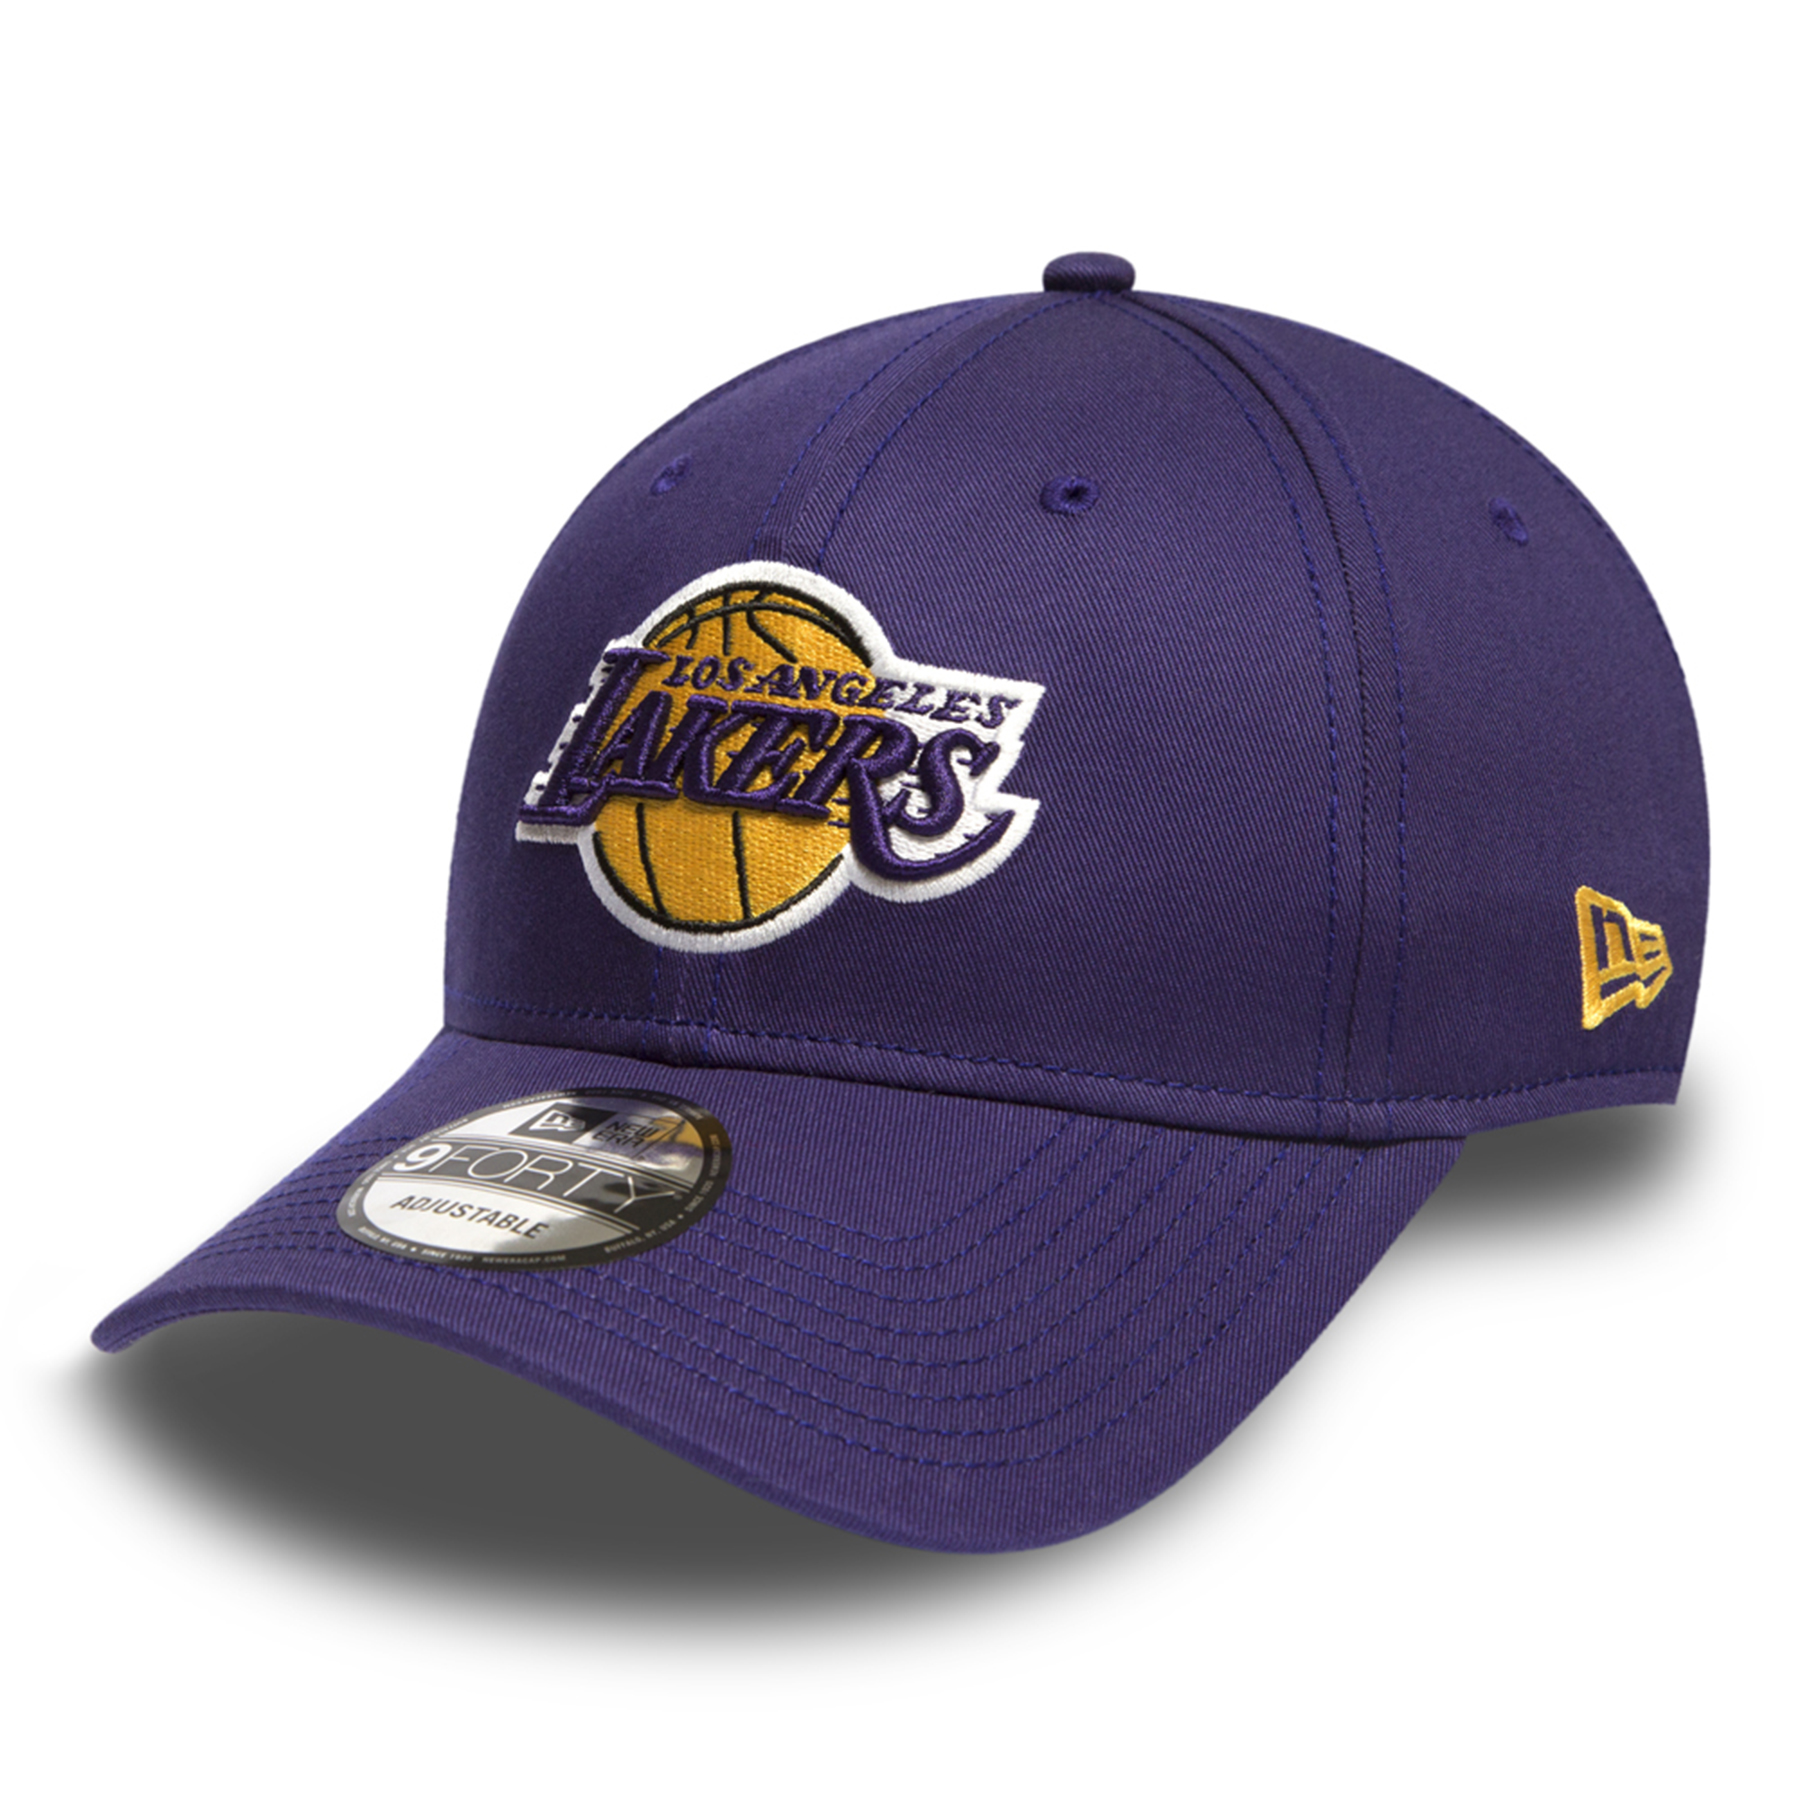 Los Angeles Lakers New Era Basic 9FORTY Adujstable Cap